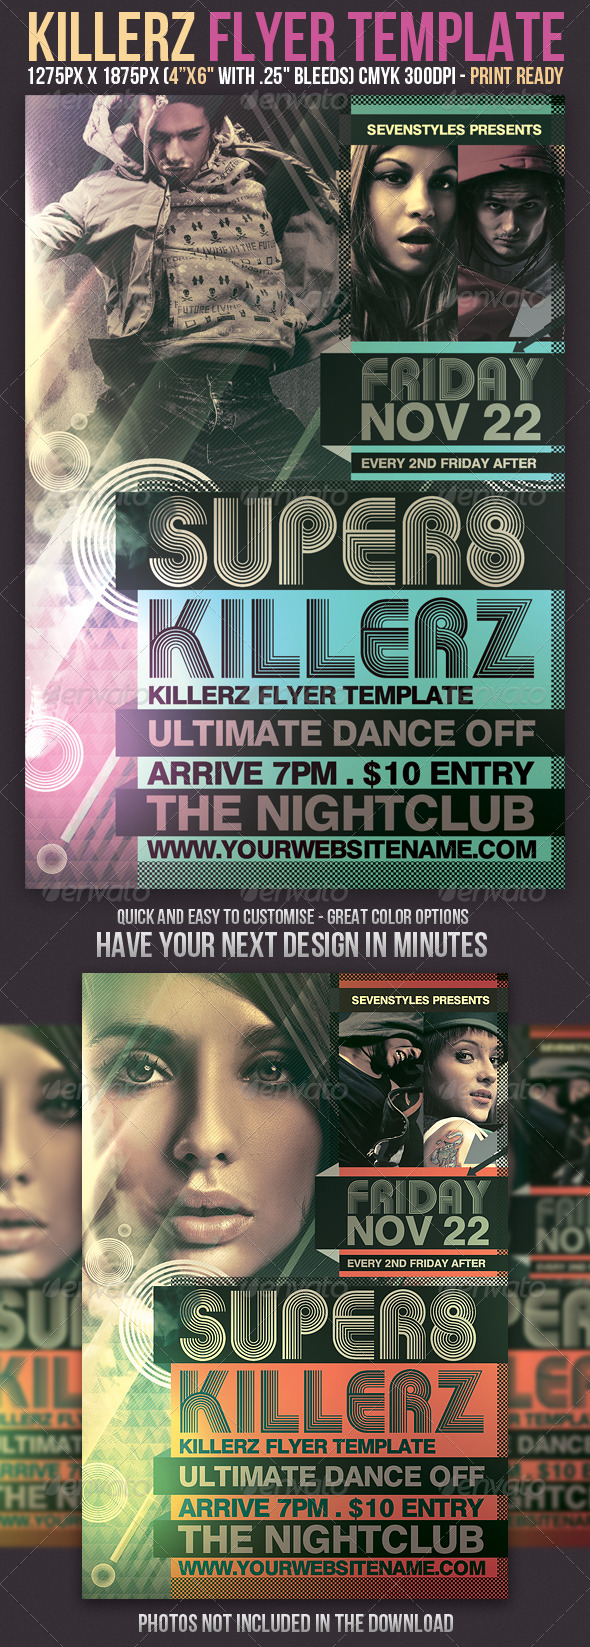 Killerz Flyer Template - Clubs & Parties Events